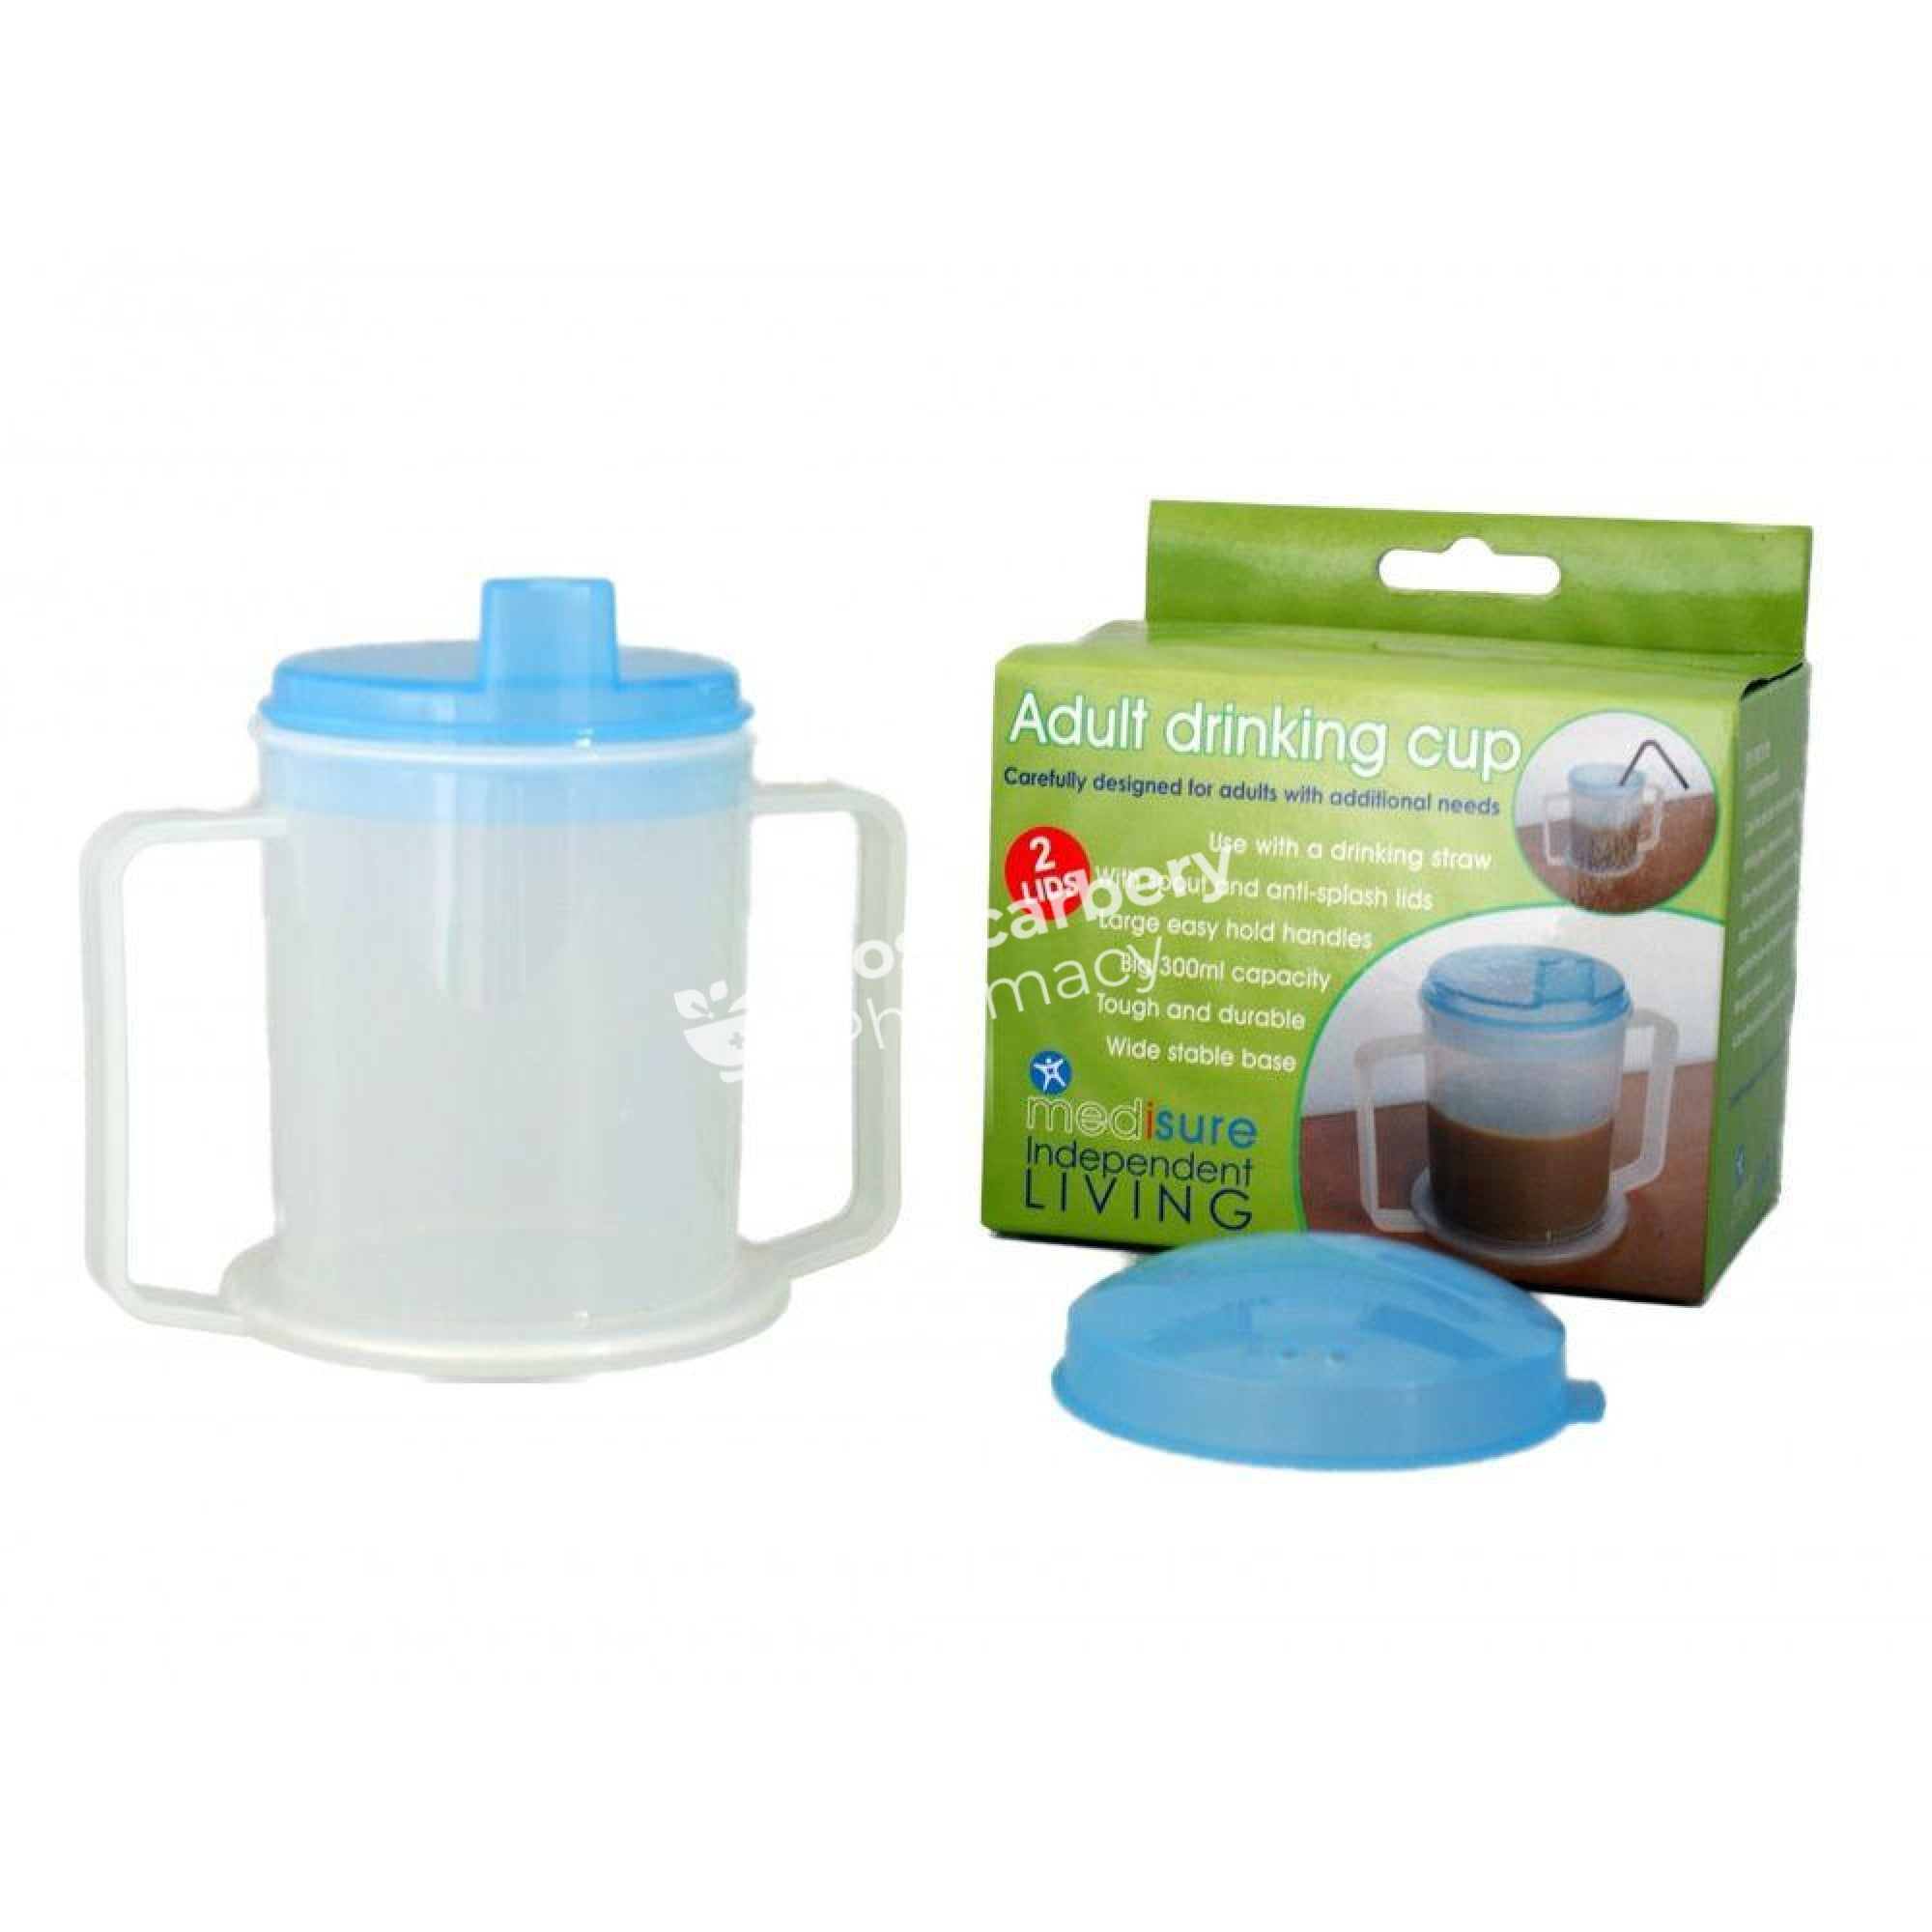 Medisure Adult Drinking Cup First Aid Accessories